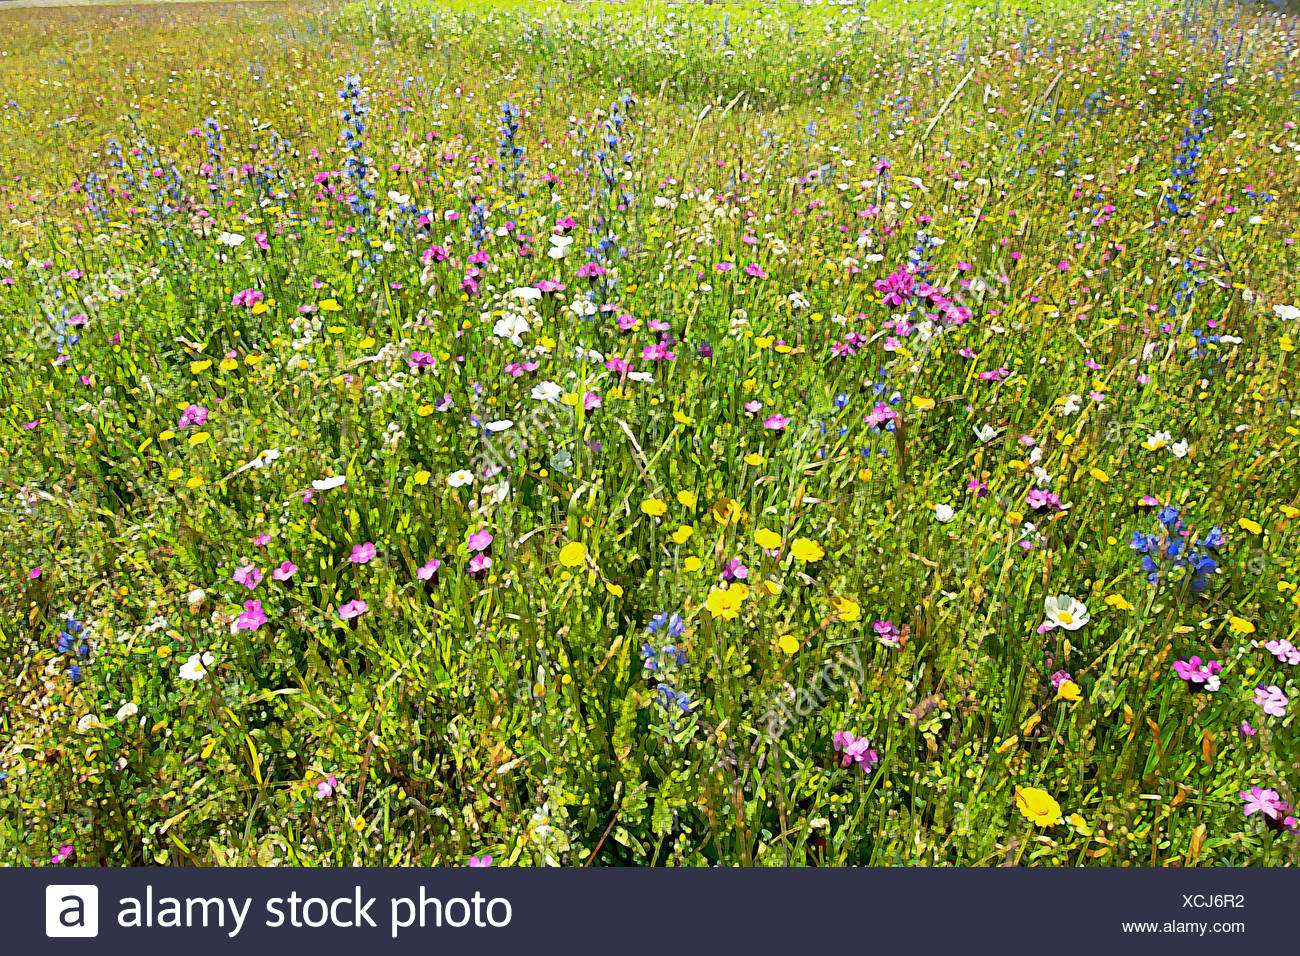 Meadow at the BUGA Munich 05, Photoshop-artistic-filter, - Stock Image